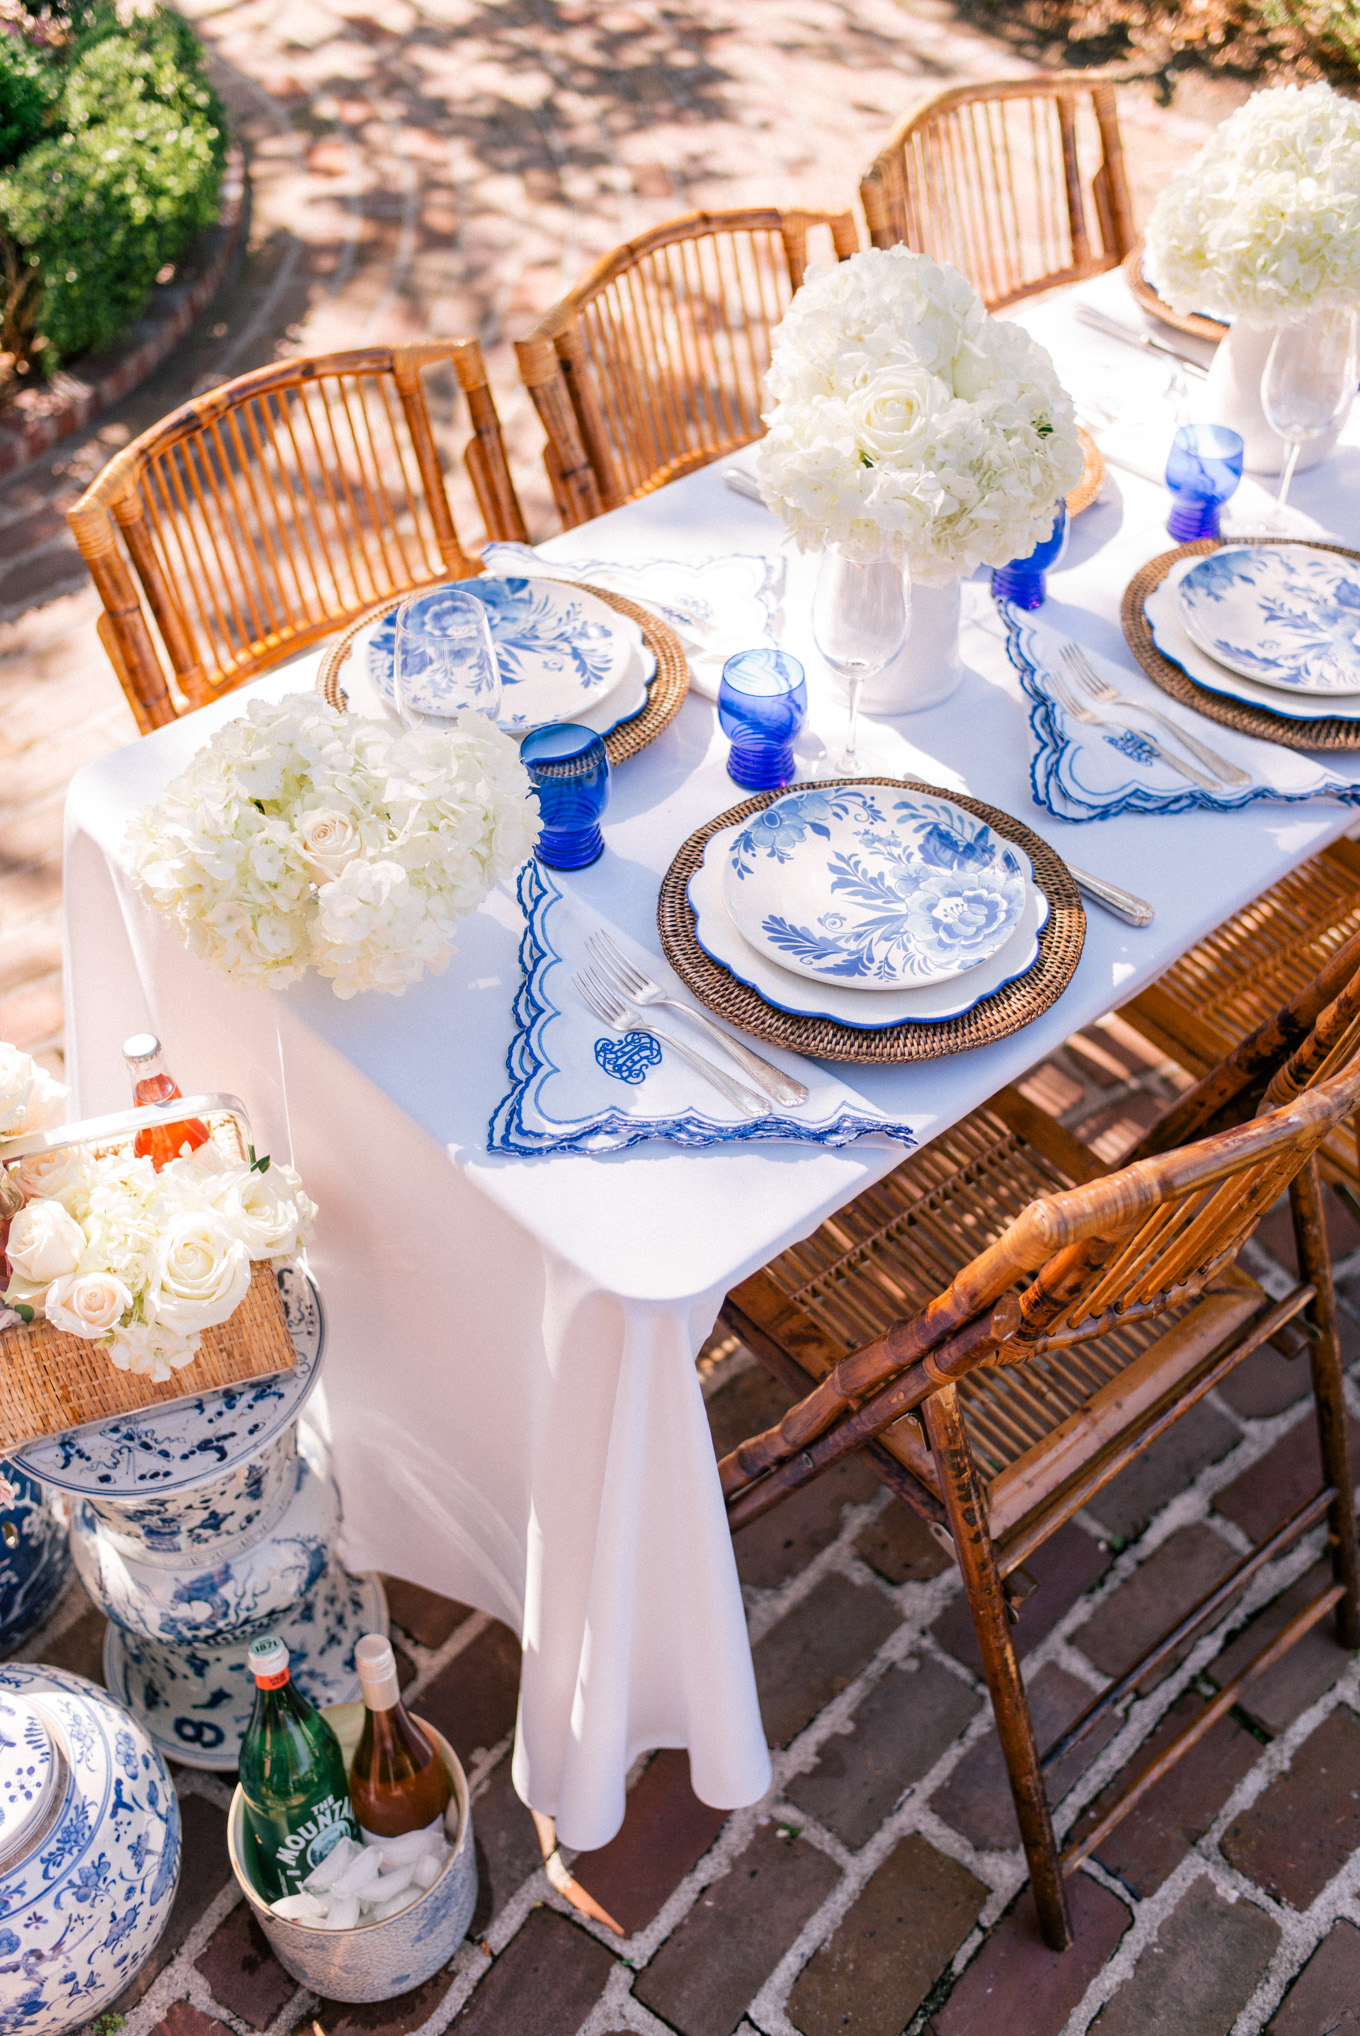 gmg-fourth-of-july-table-1009286